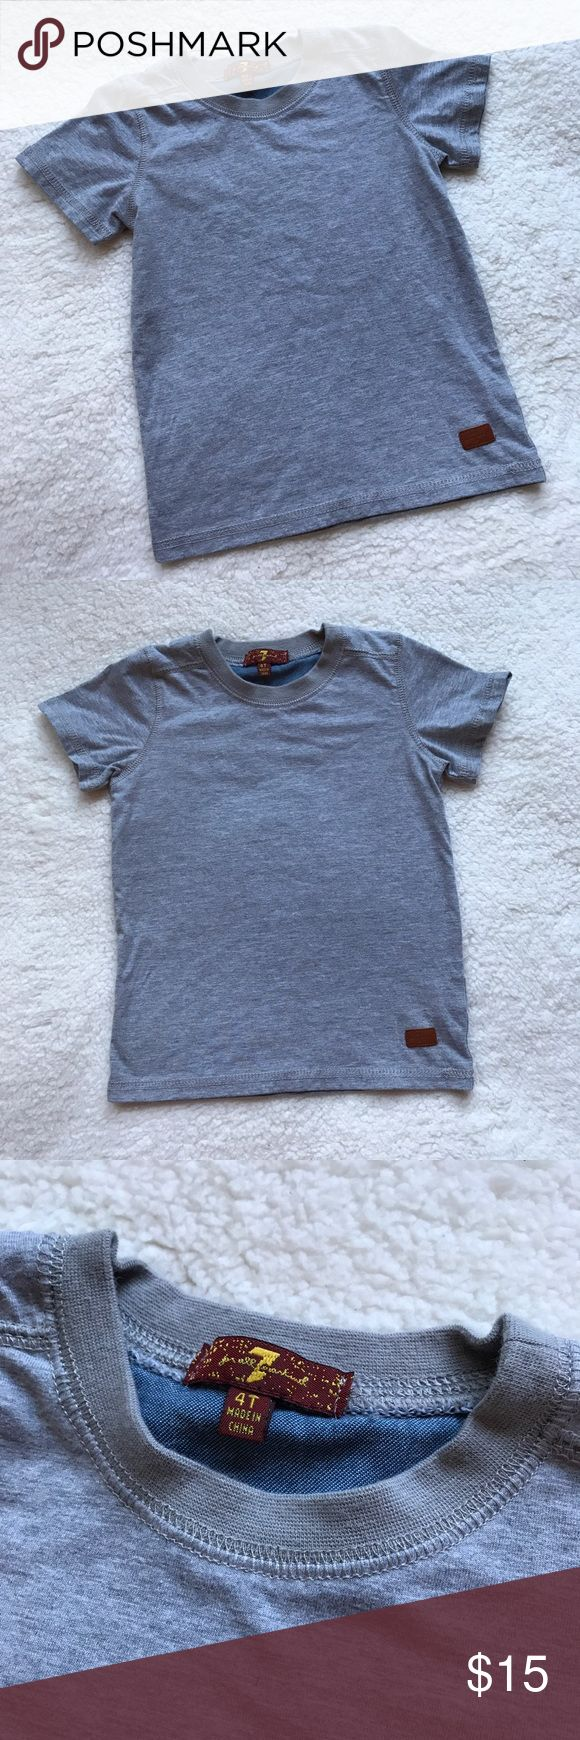 7 for all Mankind Gray Fitted Crew Tee Shirt 7famk ✨ Reasonable offers welcome ✨  Boys 7 for all Mankind Gray Short Sleeve Tee Shirt  Great condition! Worn once! Heather Gray Color!   Labeled a size 4, but there is no way. It fit my youngest when he was 2. So putting the size as 2T.  Bundle & Save!! 7 For All Mankind Shirts & Tops Tees - Short Sleeve